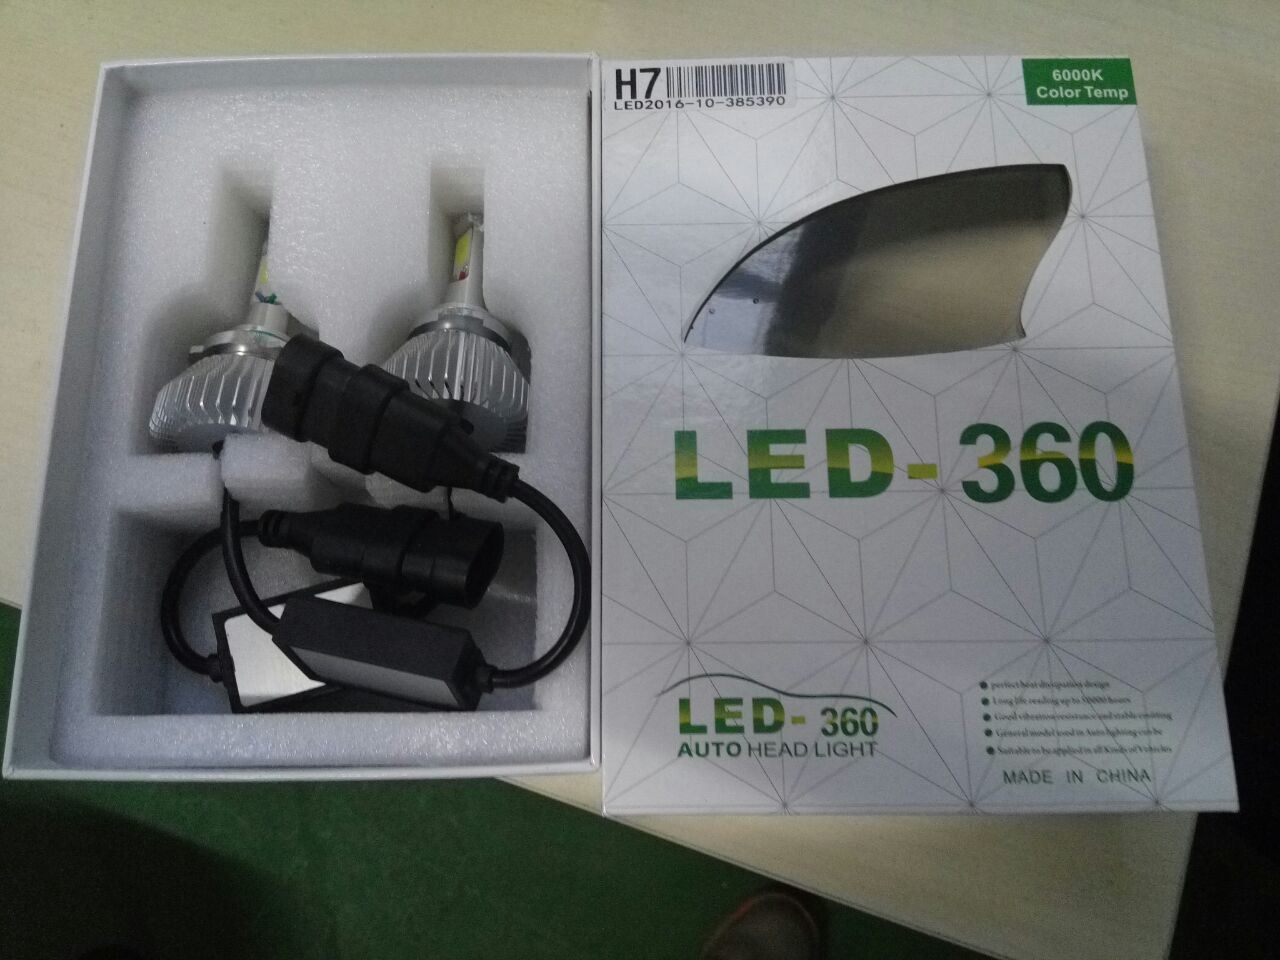 Factory Direct Fanless LED Headlighting Car LED Headlight H4 H7 H11 H13 H15 H16 Hb3 Hb4 9004 LED Headlight